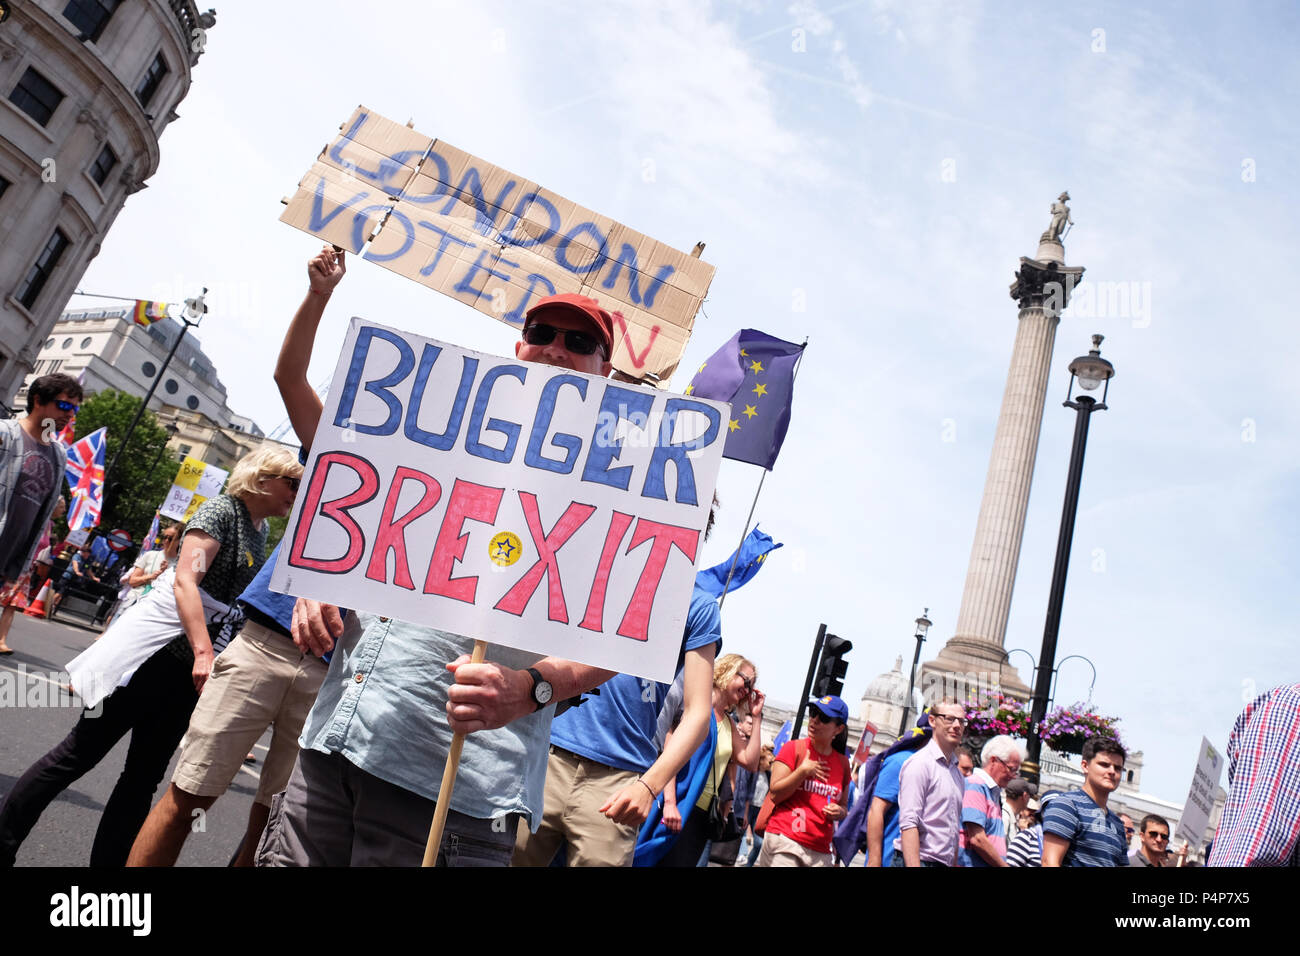 Brexit People's Vote march London UK -  Saturday 23rd June 2018 - Protestors march through Trafalgar Square en route Whitehall to demand a second vote on the final Brexit deal - Steven May /Alamy Live News - Stock Image